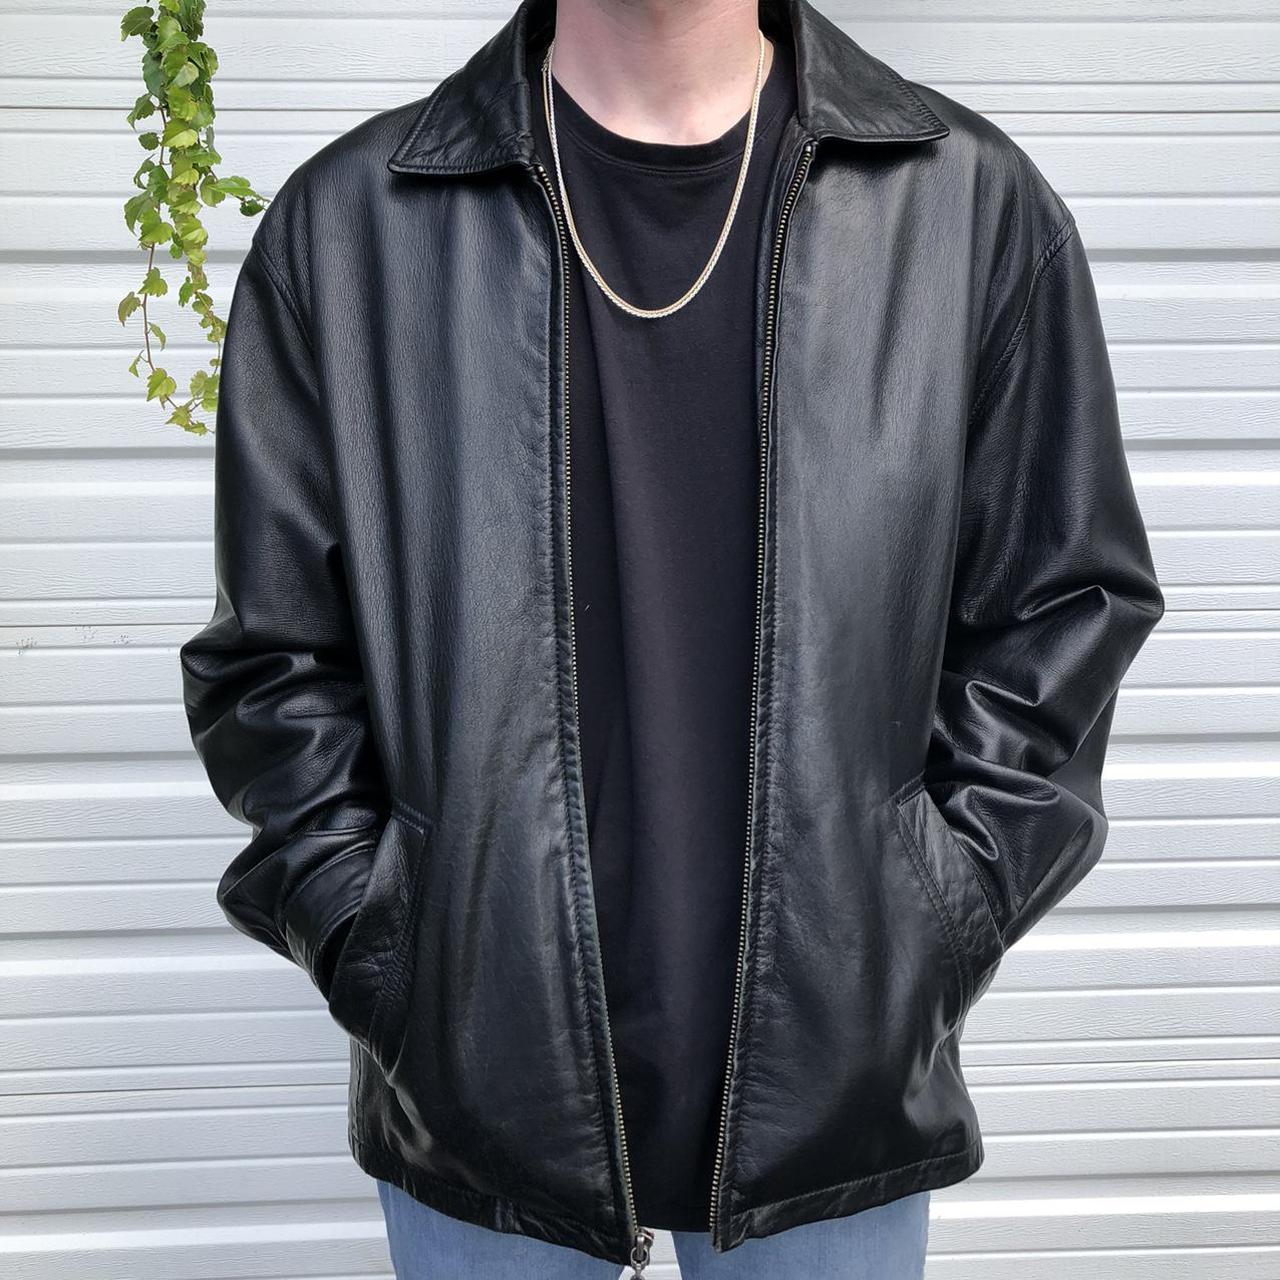 Product Image 1 - Wilson's Leather Jacket  Condition: Gently